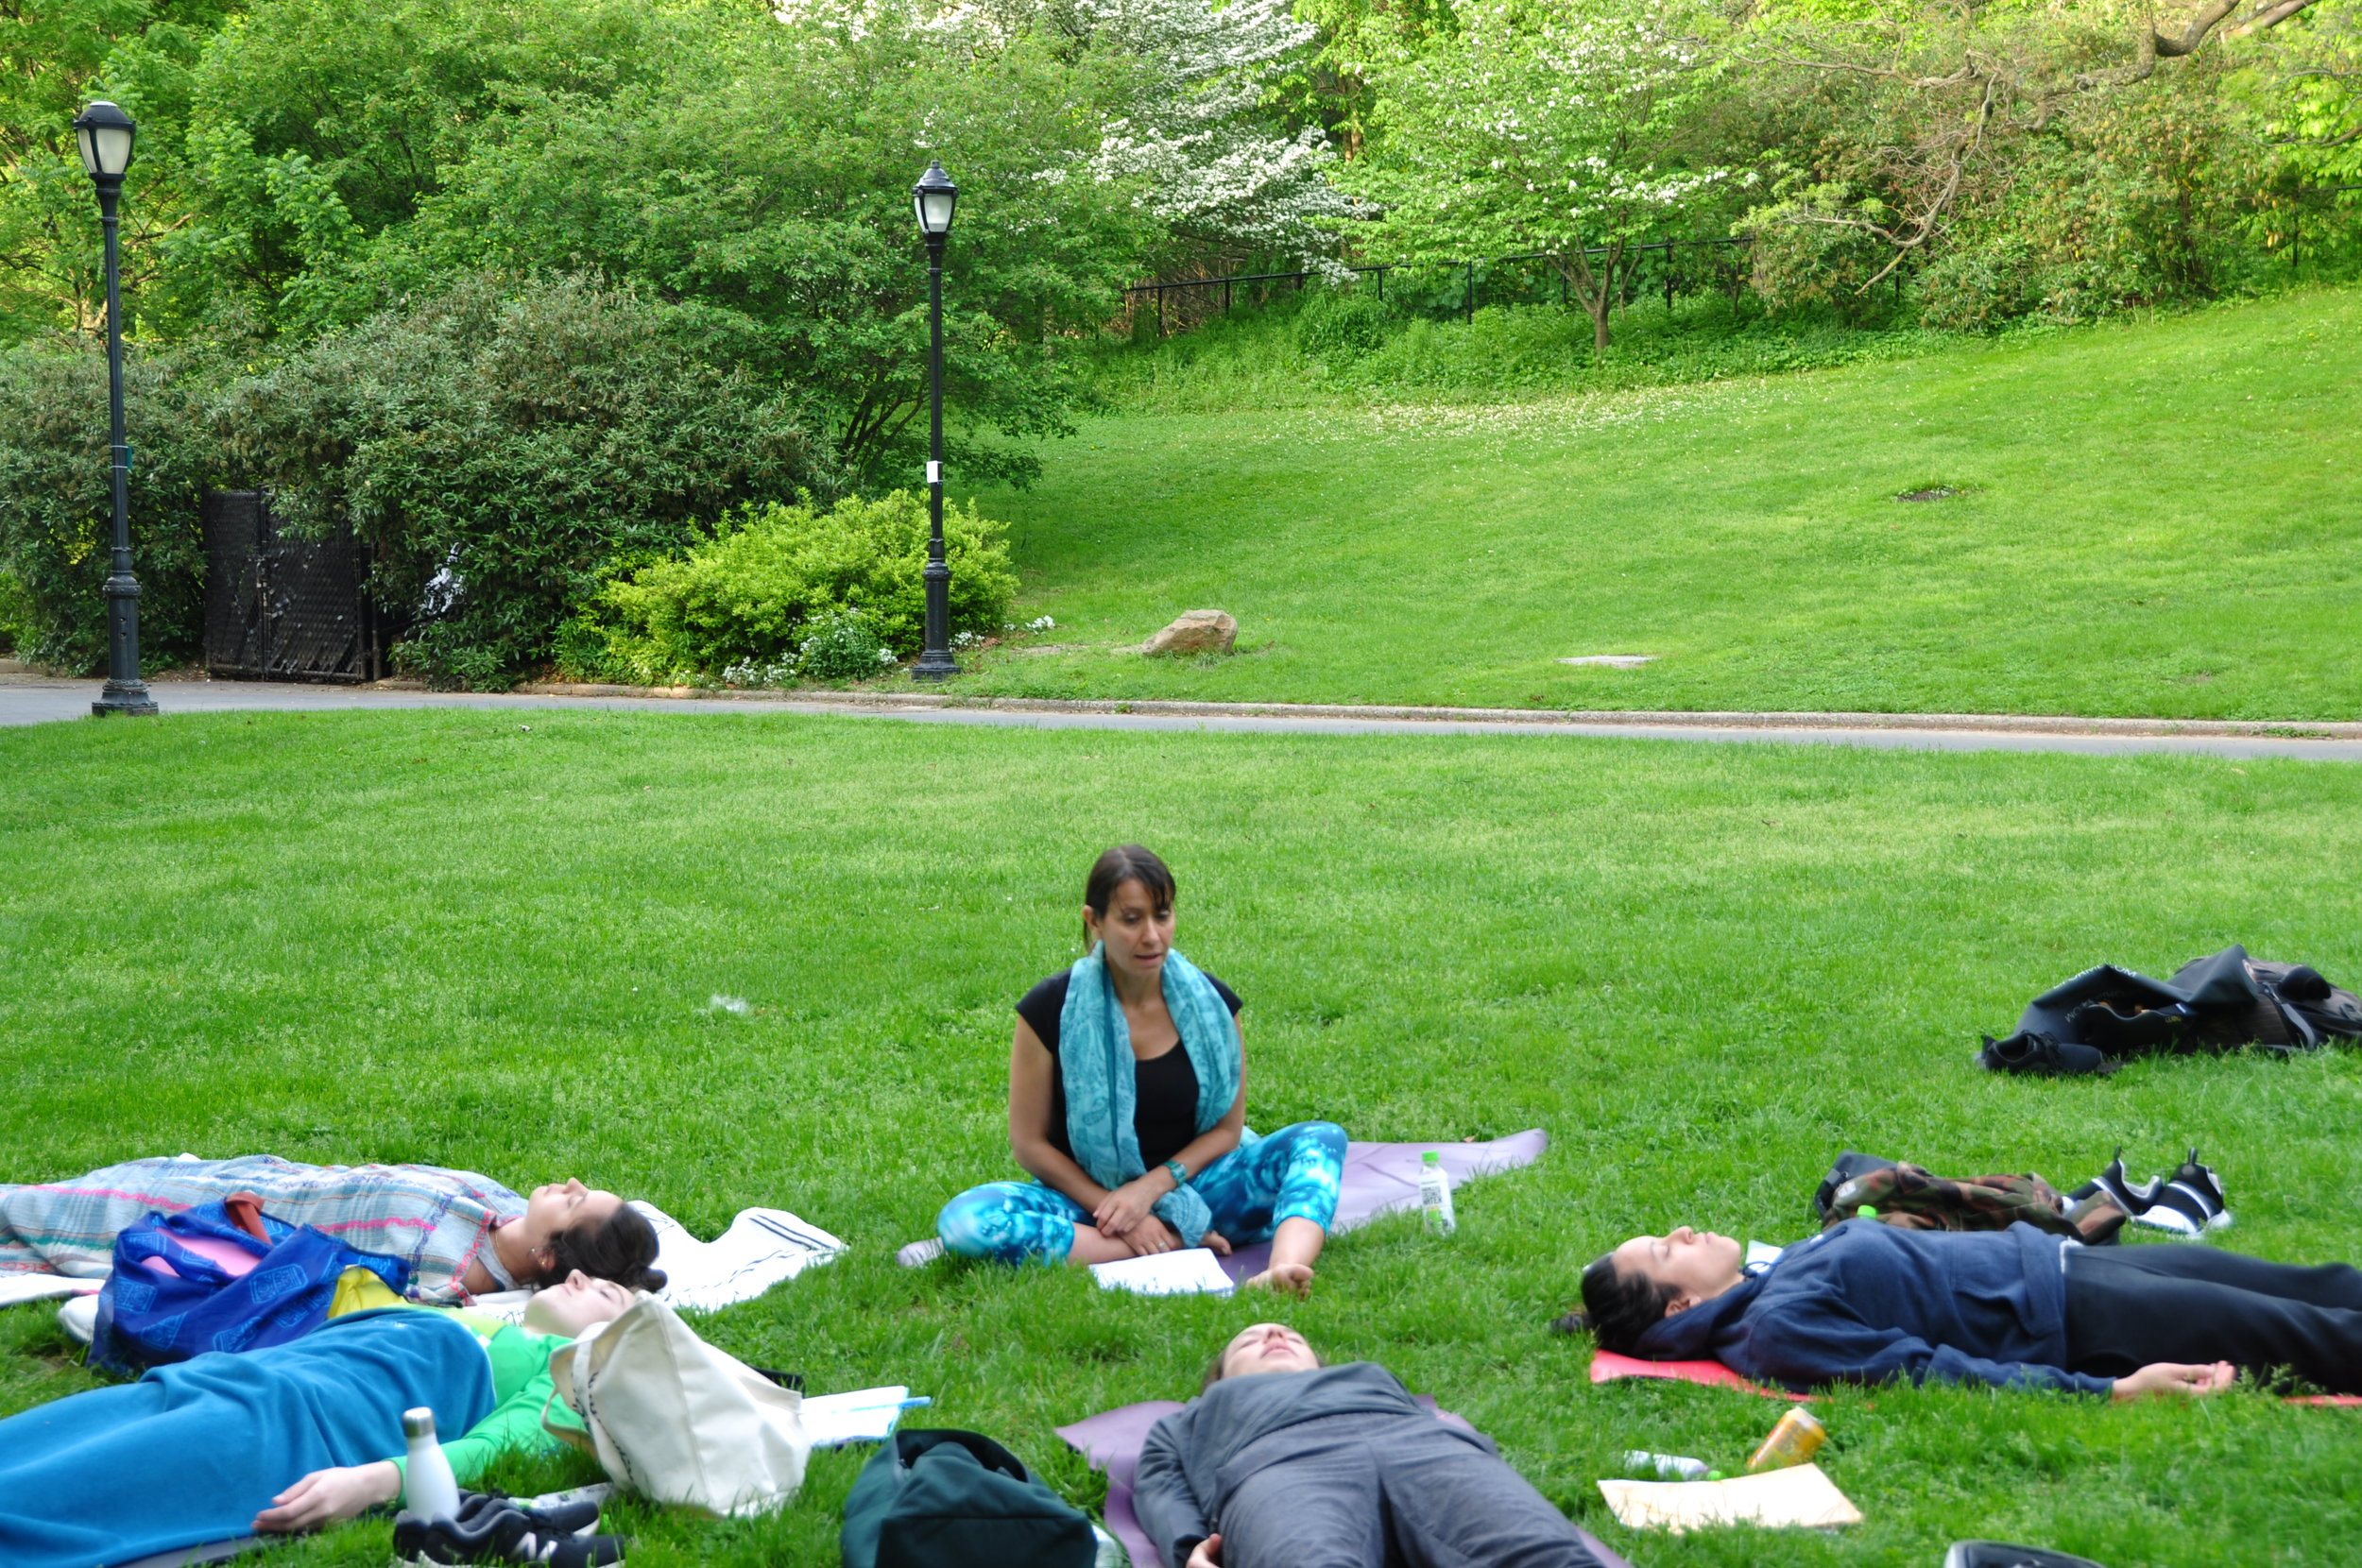 Small group coaching session in Prospect Park with Dominique Mas